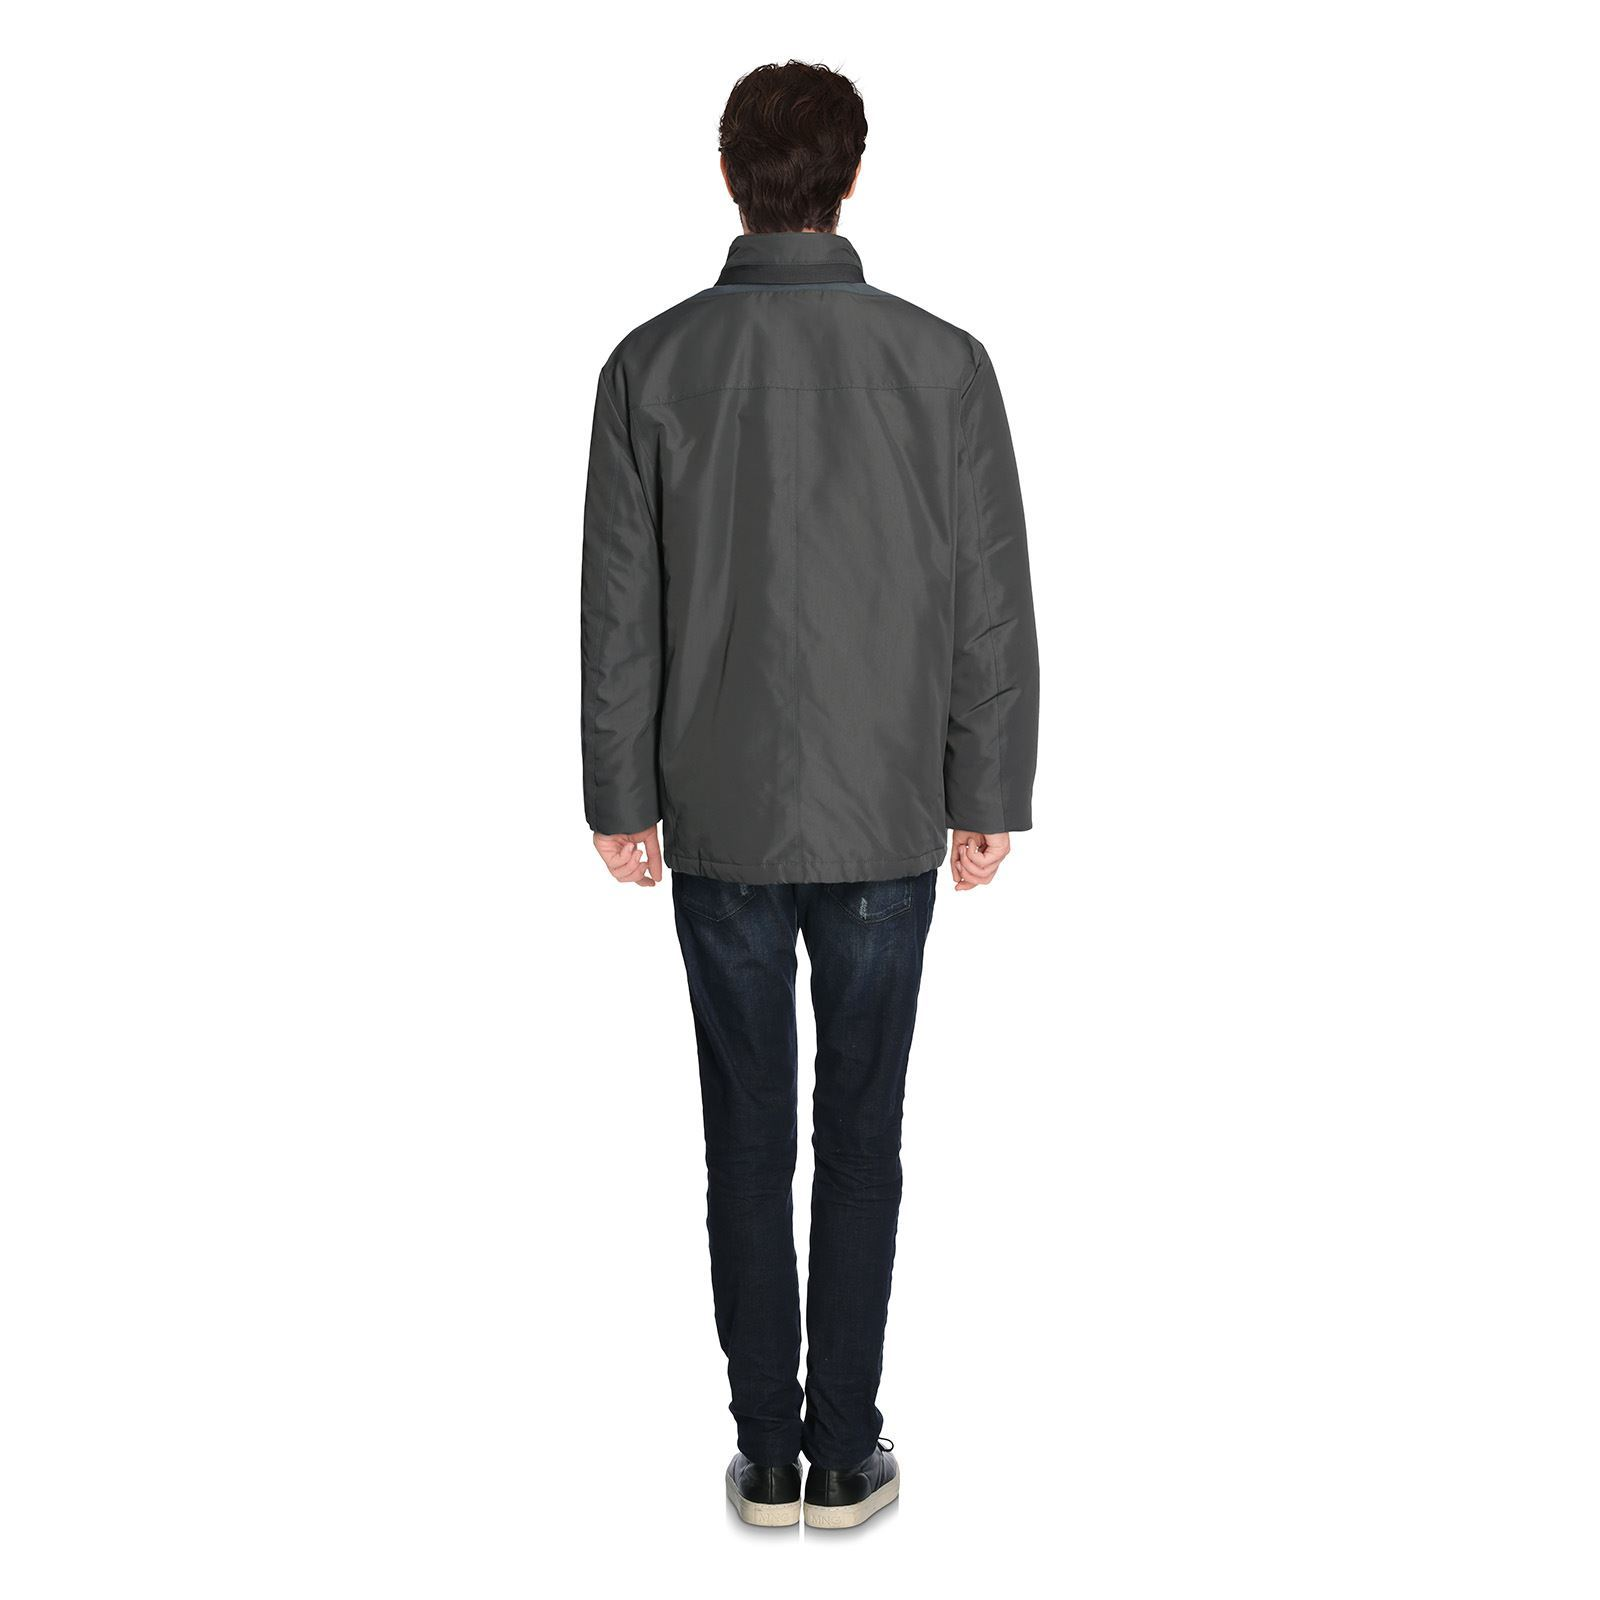 ade63bf1ca3ab Geox Veste coupe-vent - gris   BrandAlley